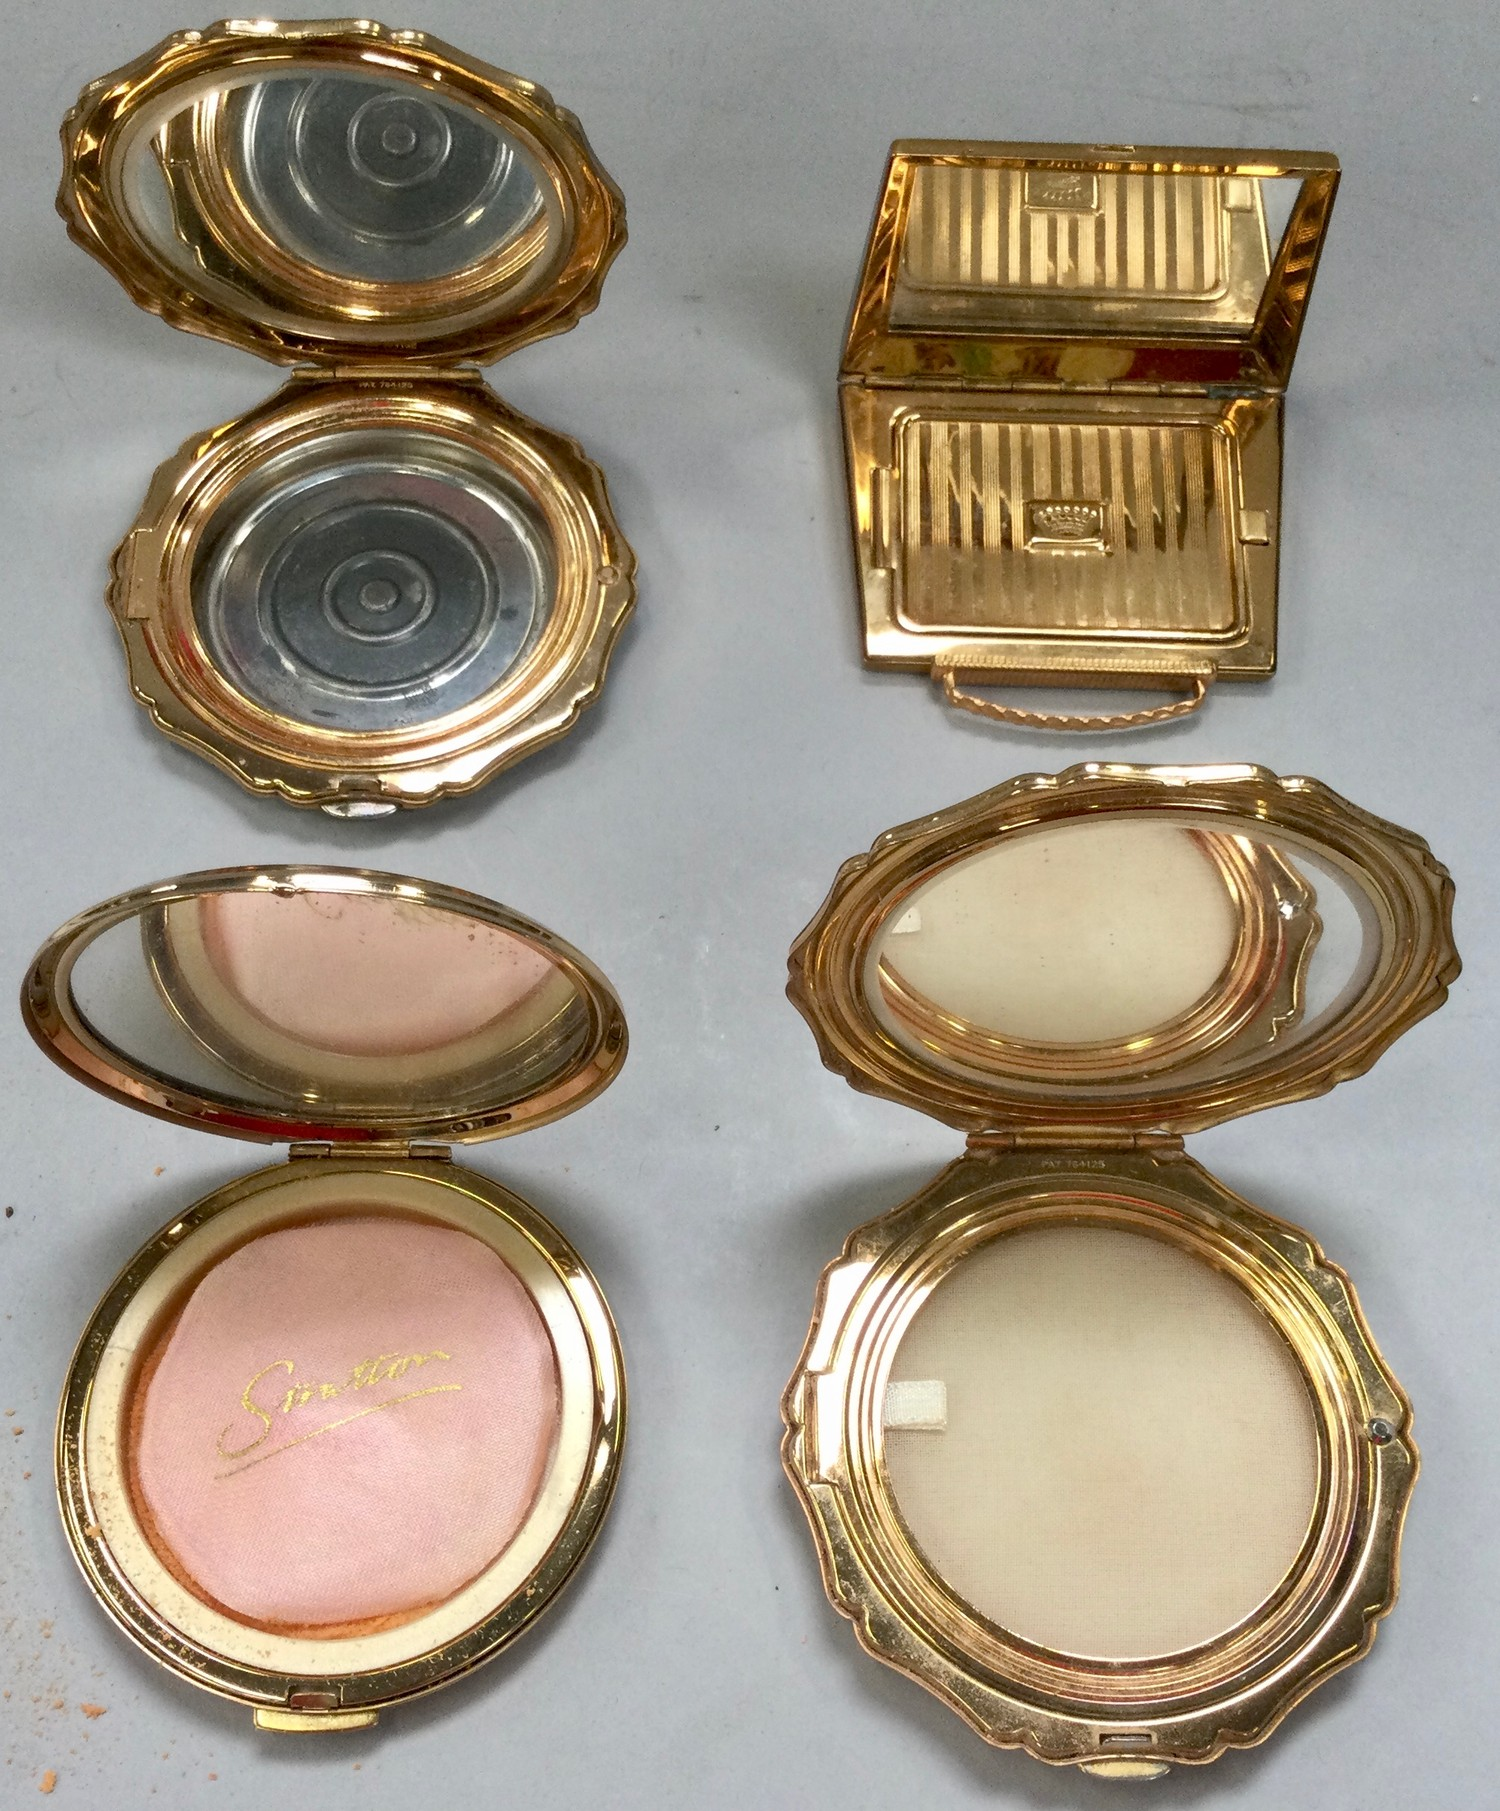 Stratton ladies compacts x4 all with cloth pouches. - Image 3 of 3